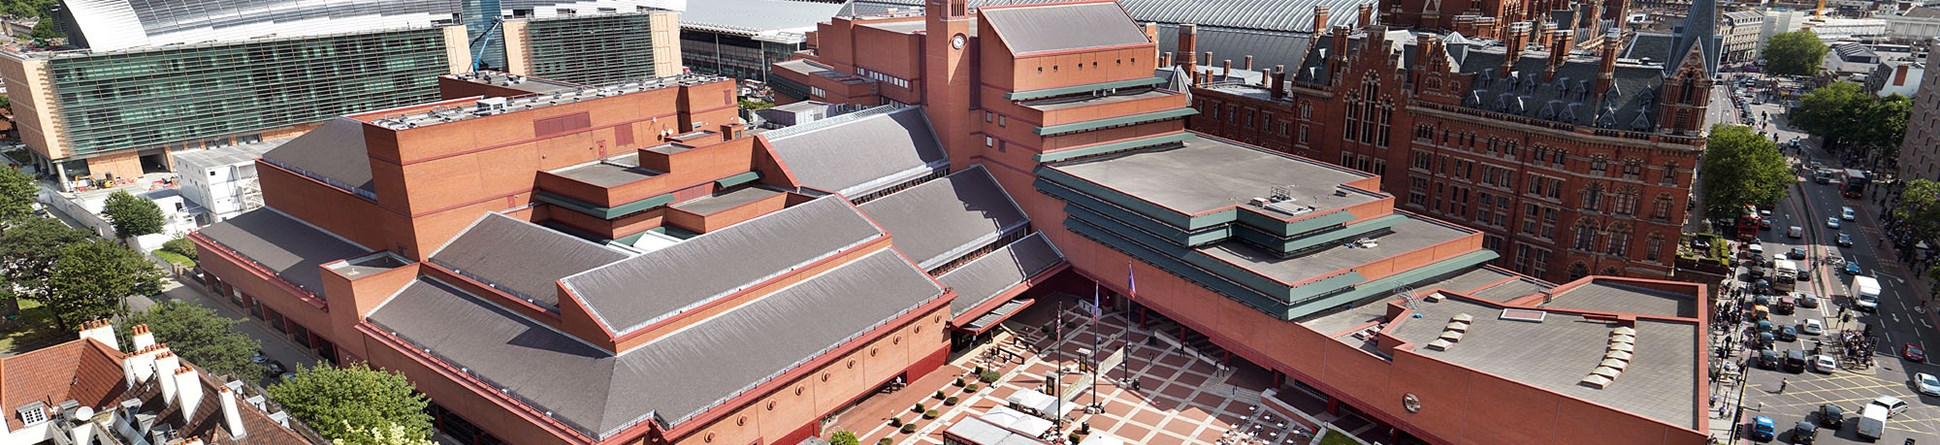 British Library external view